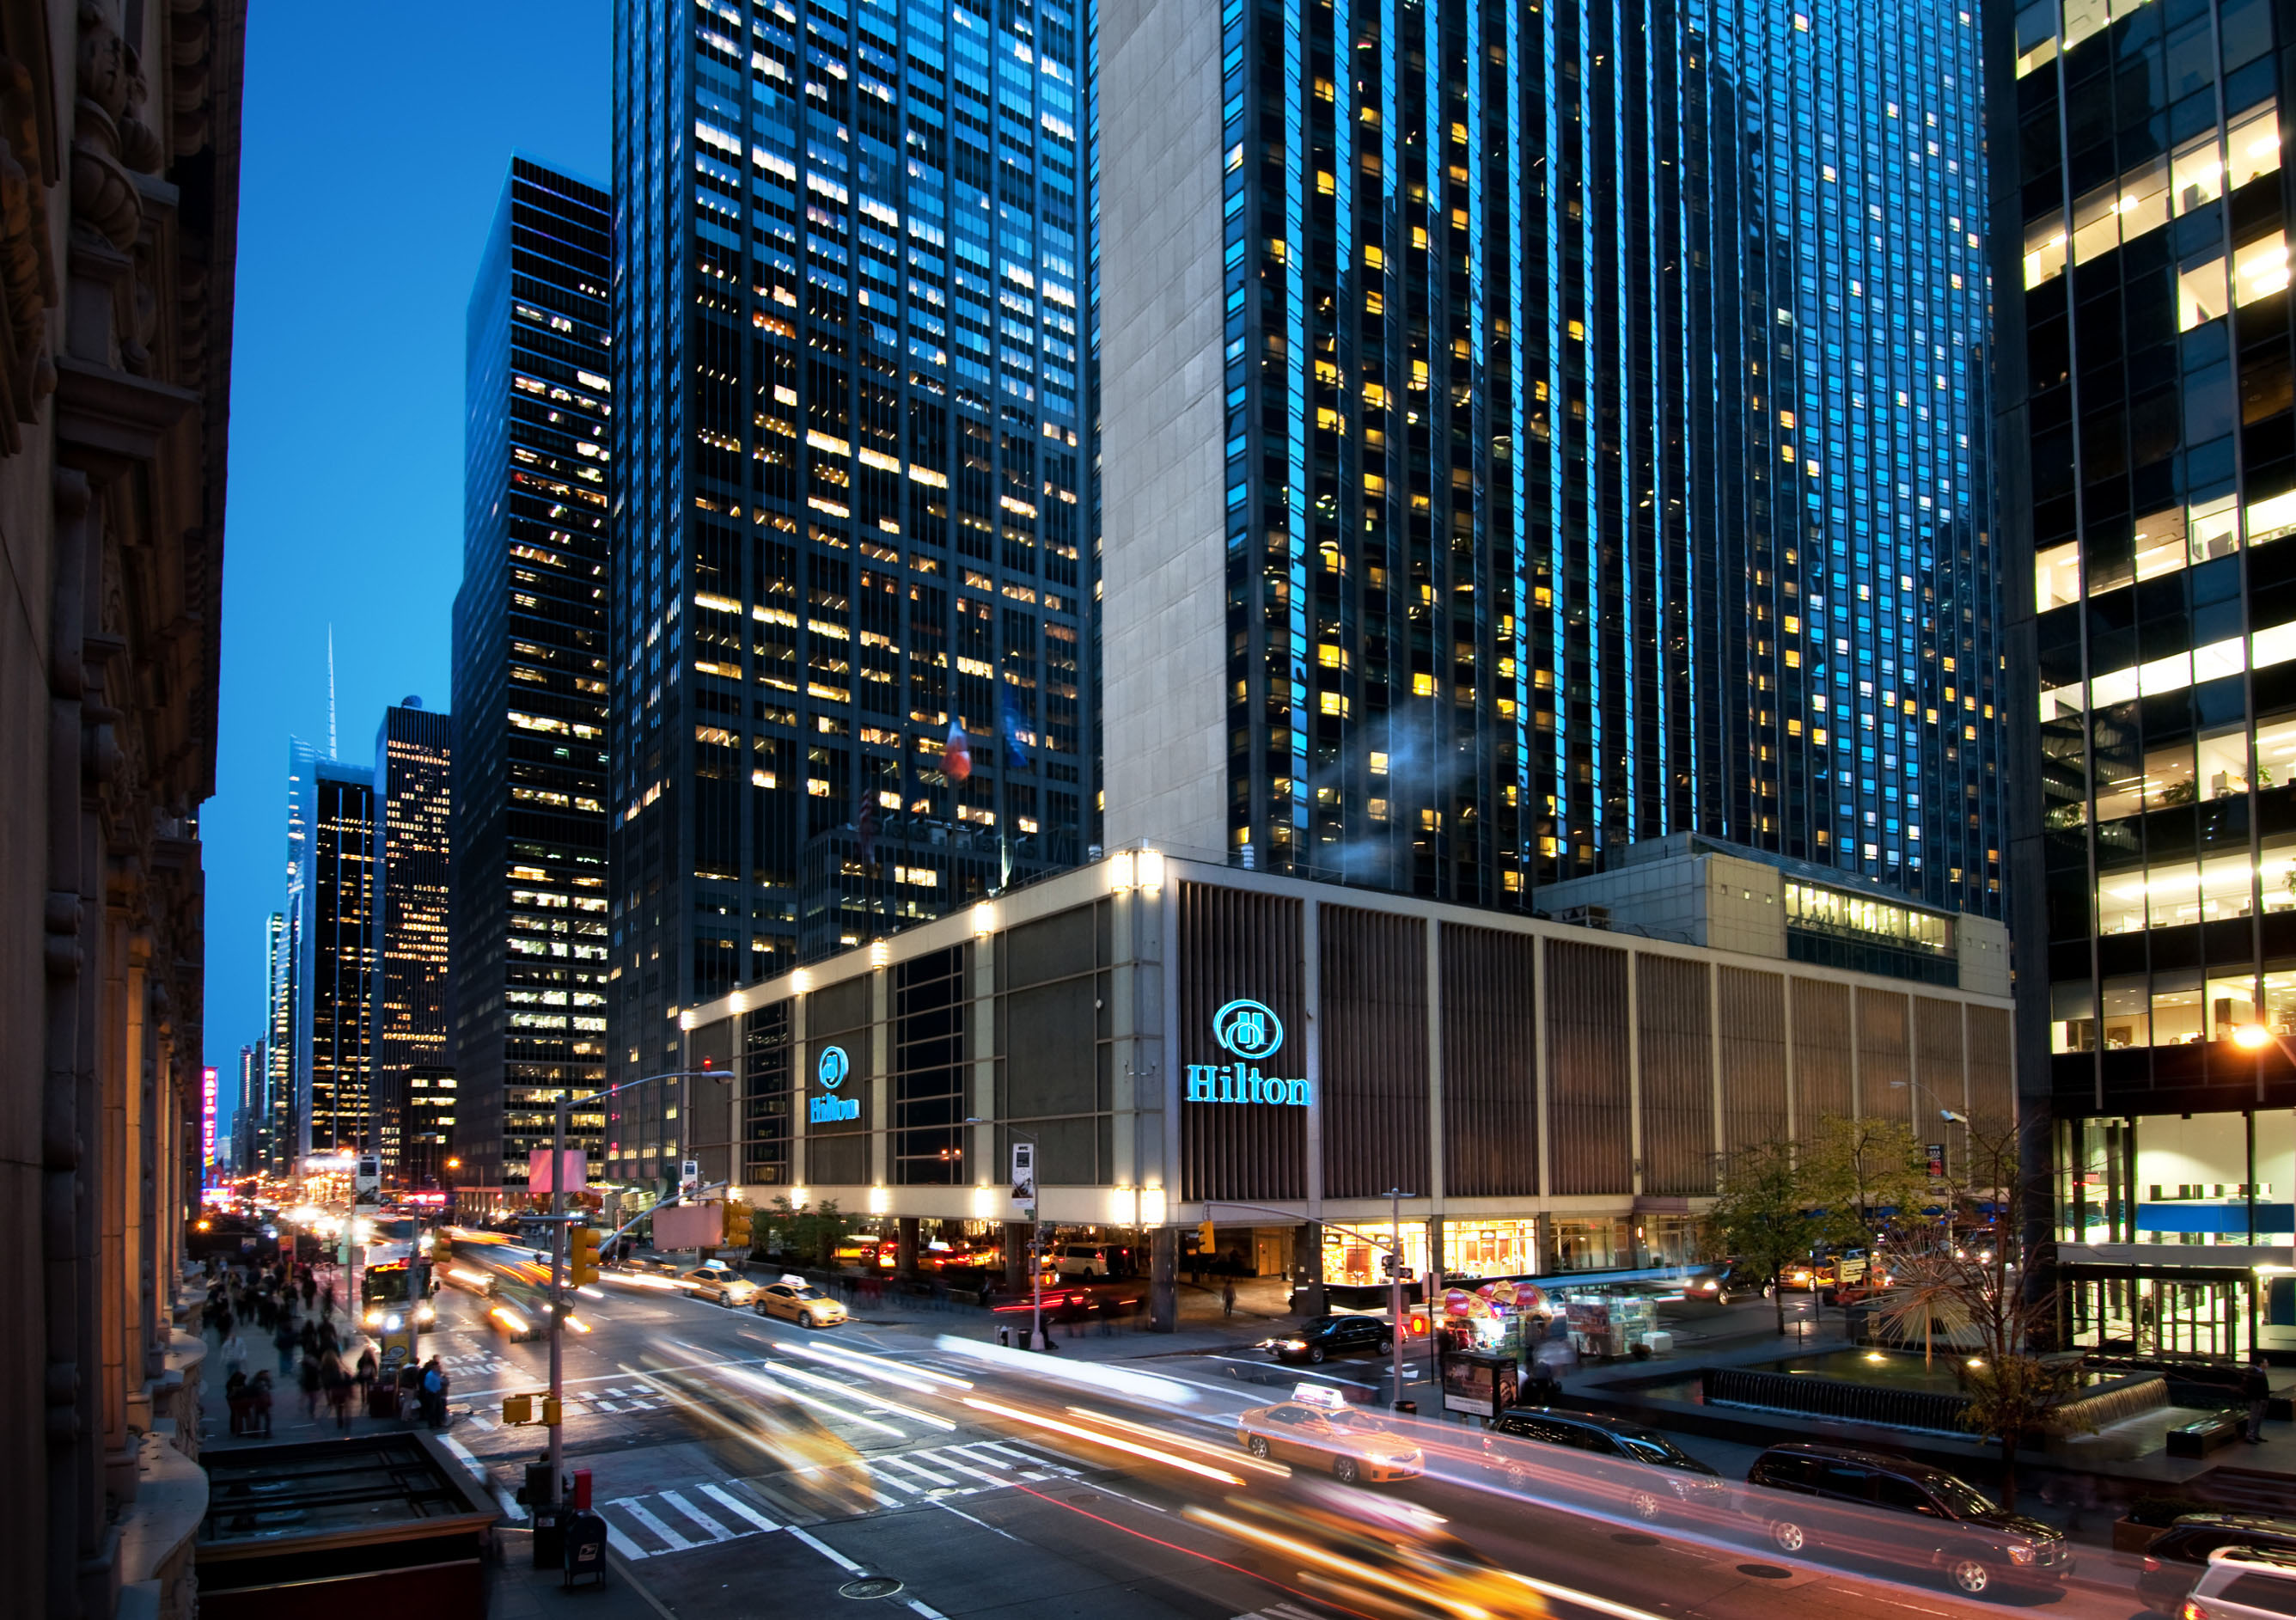 hotels in new york for thanksgiving